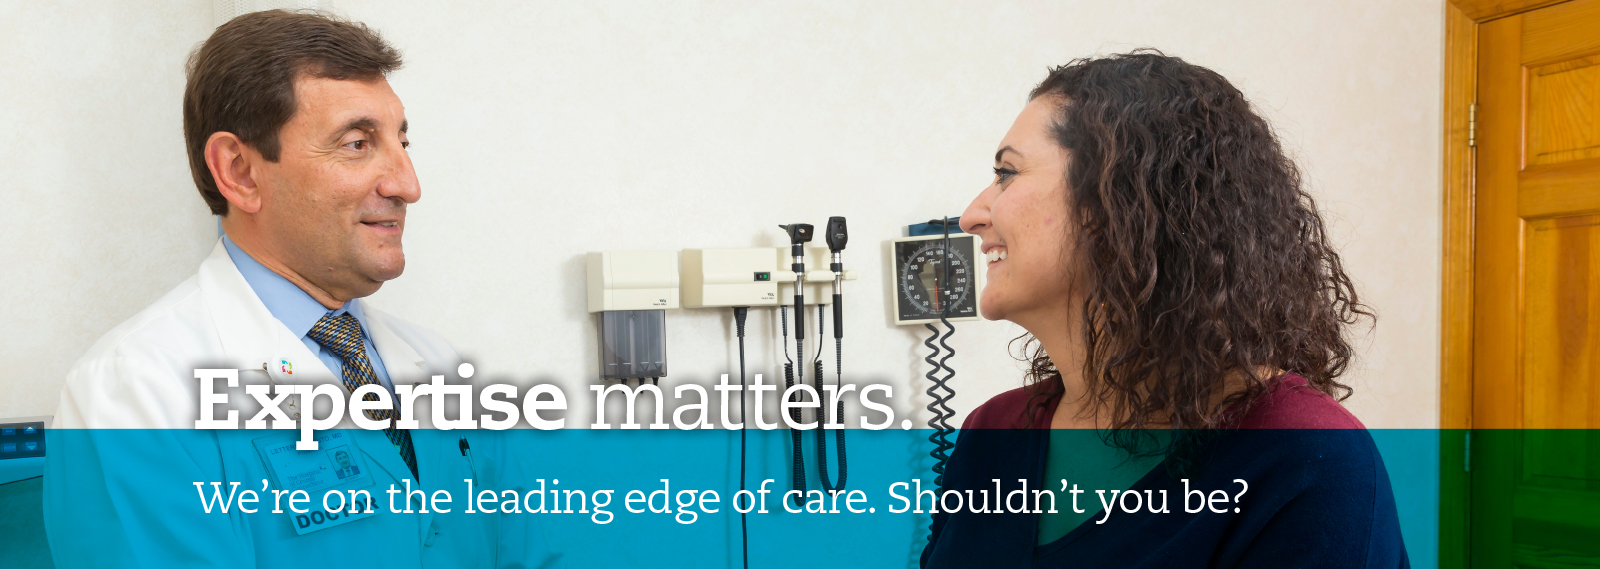 Expertise matters. We're on the leading edge of nursing. Shouldn't you be?